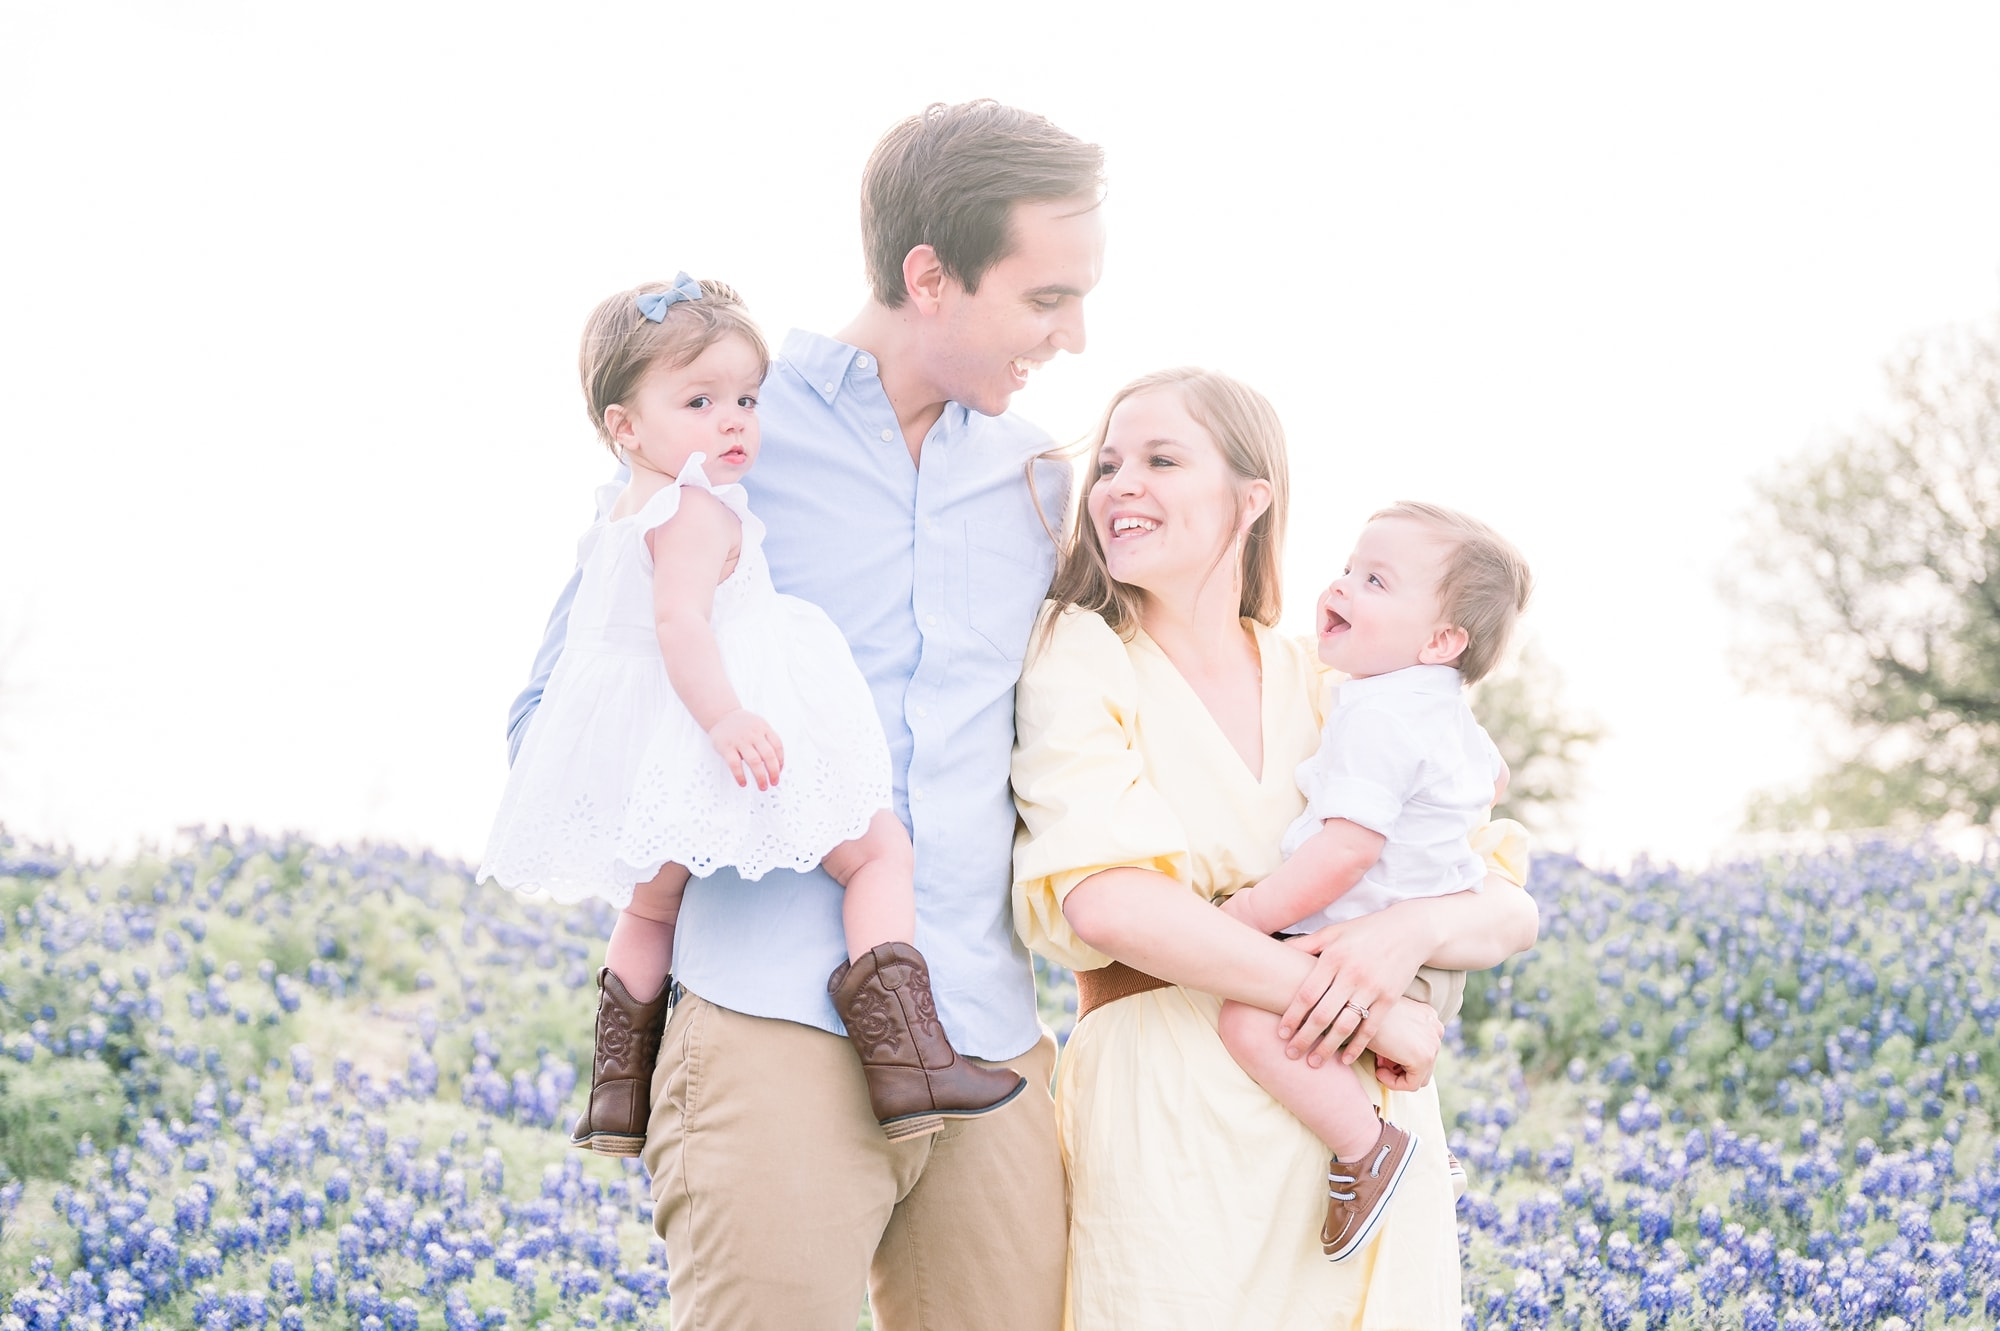 Family of four standing in field of bluebonnets. Photo by Aimee Hamilton Photography.